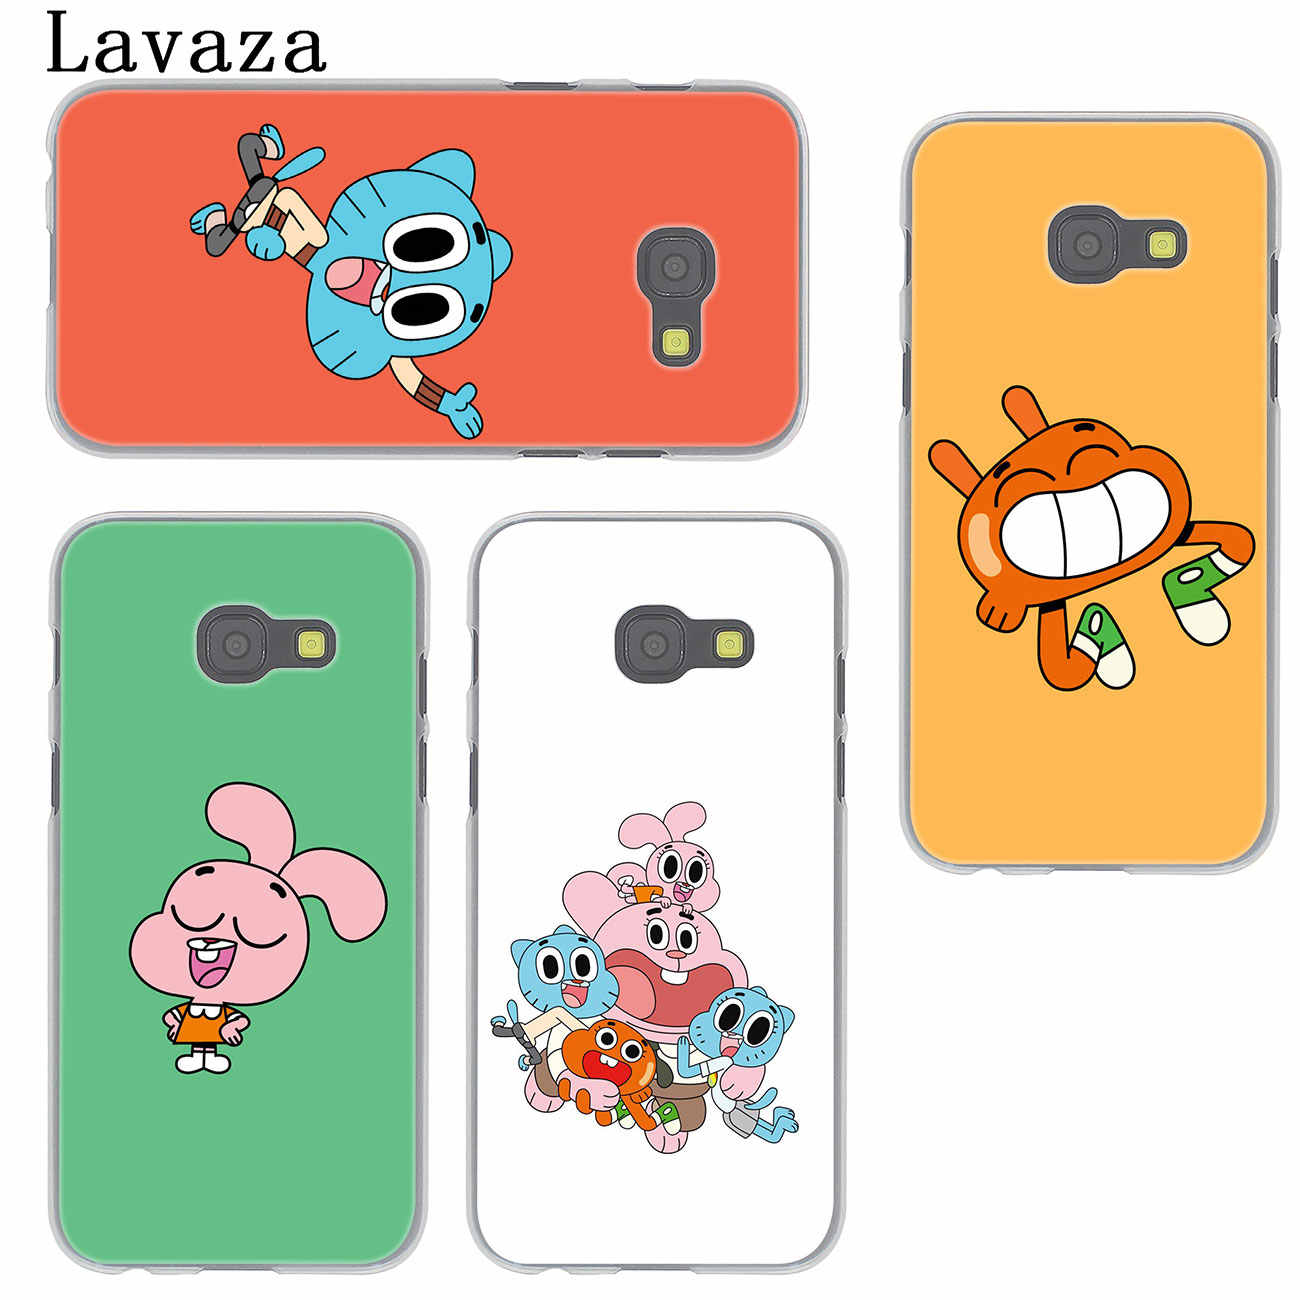 bfcac678b5 ... Lavaza The Amazing World of Gumball Phone Case for Samsung Galaxy J6 J5  J1 J2 J3 ...